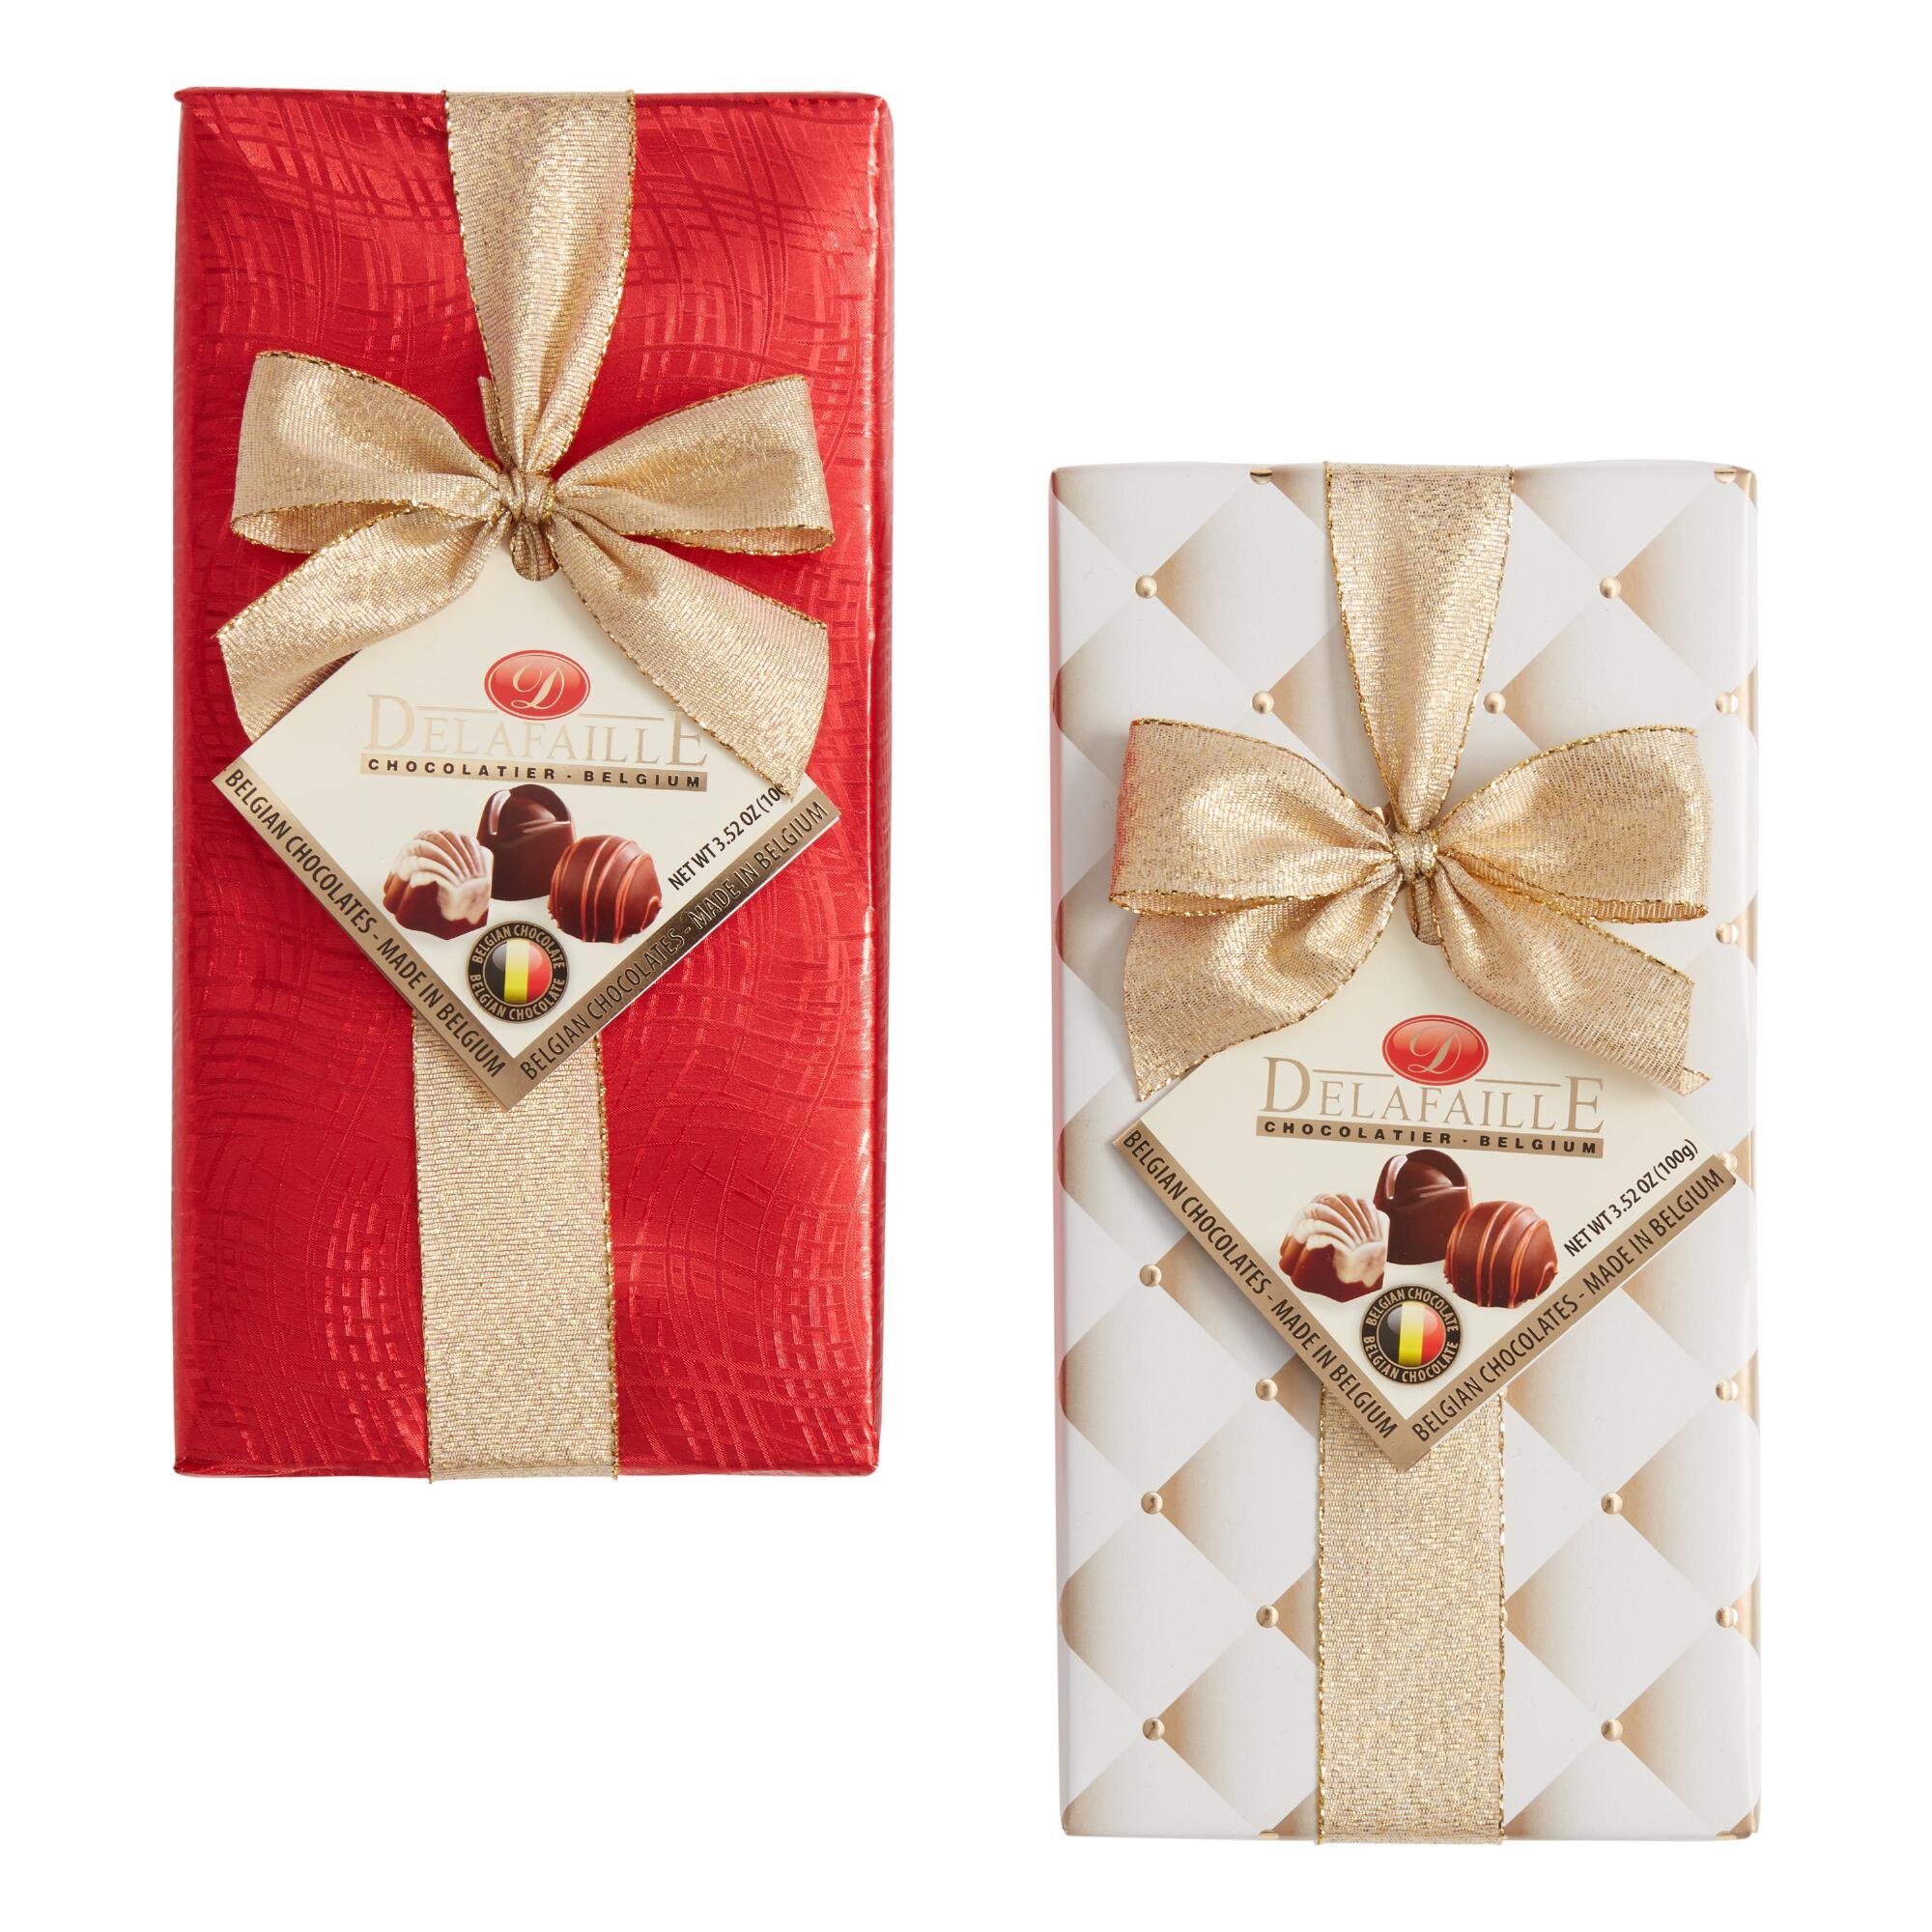 Delafaille Wrapped Chocolate Box Set of 2 | World Market